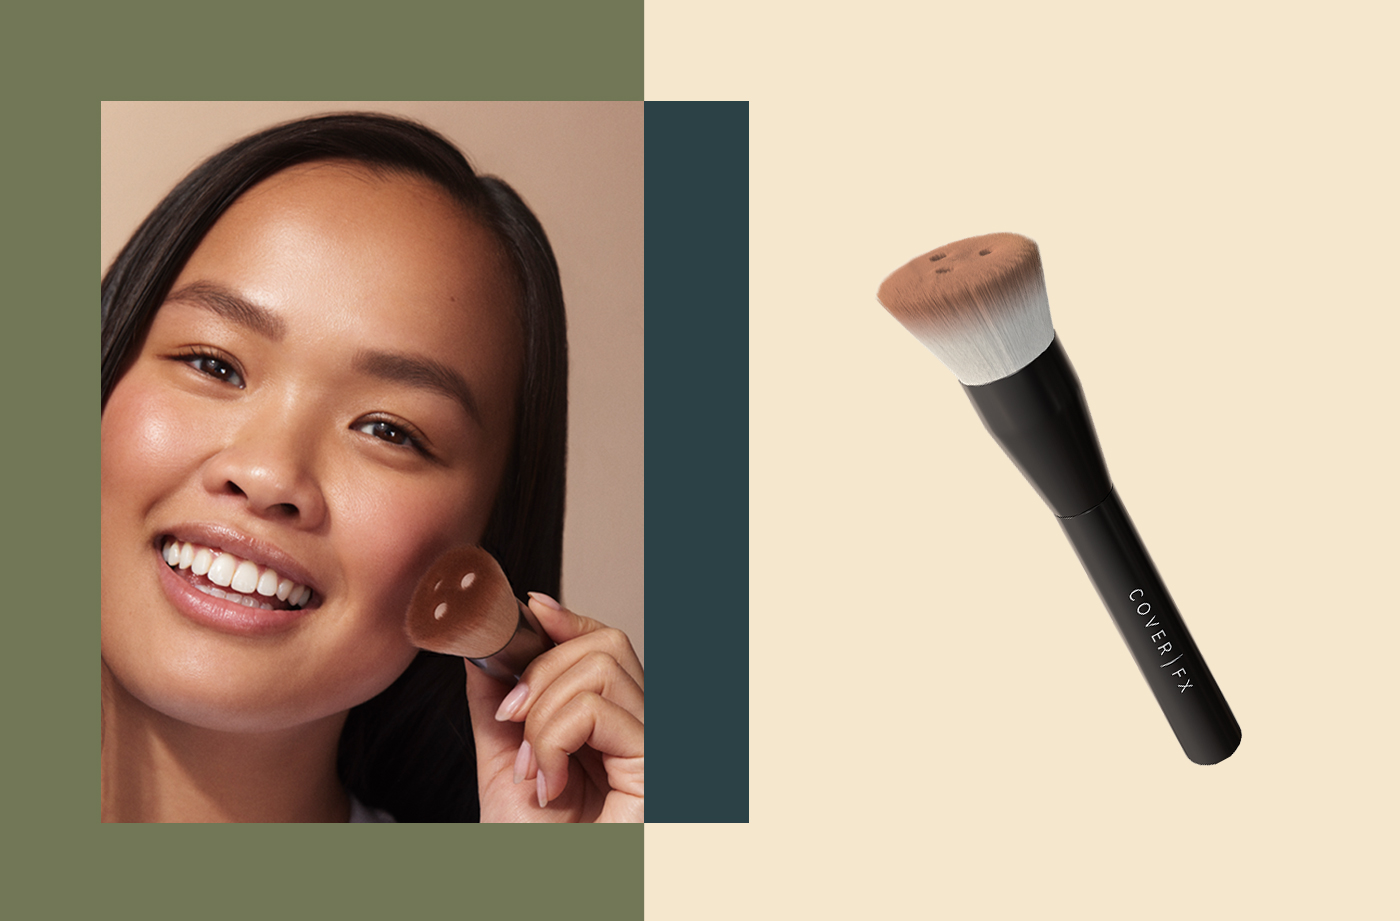 Thumbnail for This Custom Foundation Brush Gives You the Exact Coverage You're Looking For